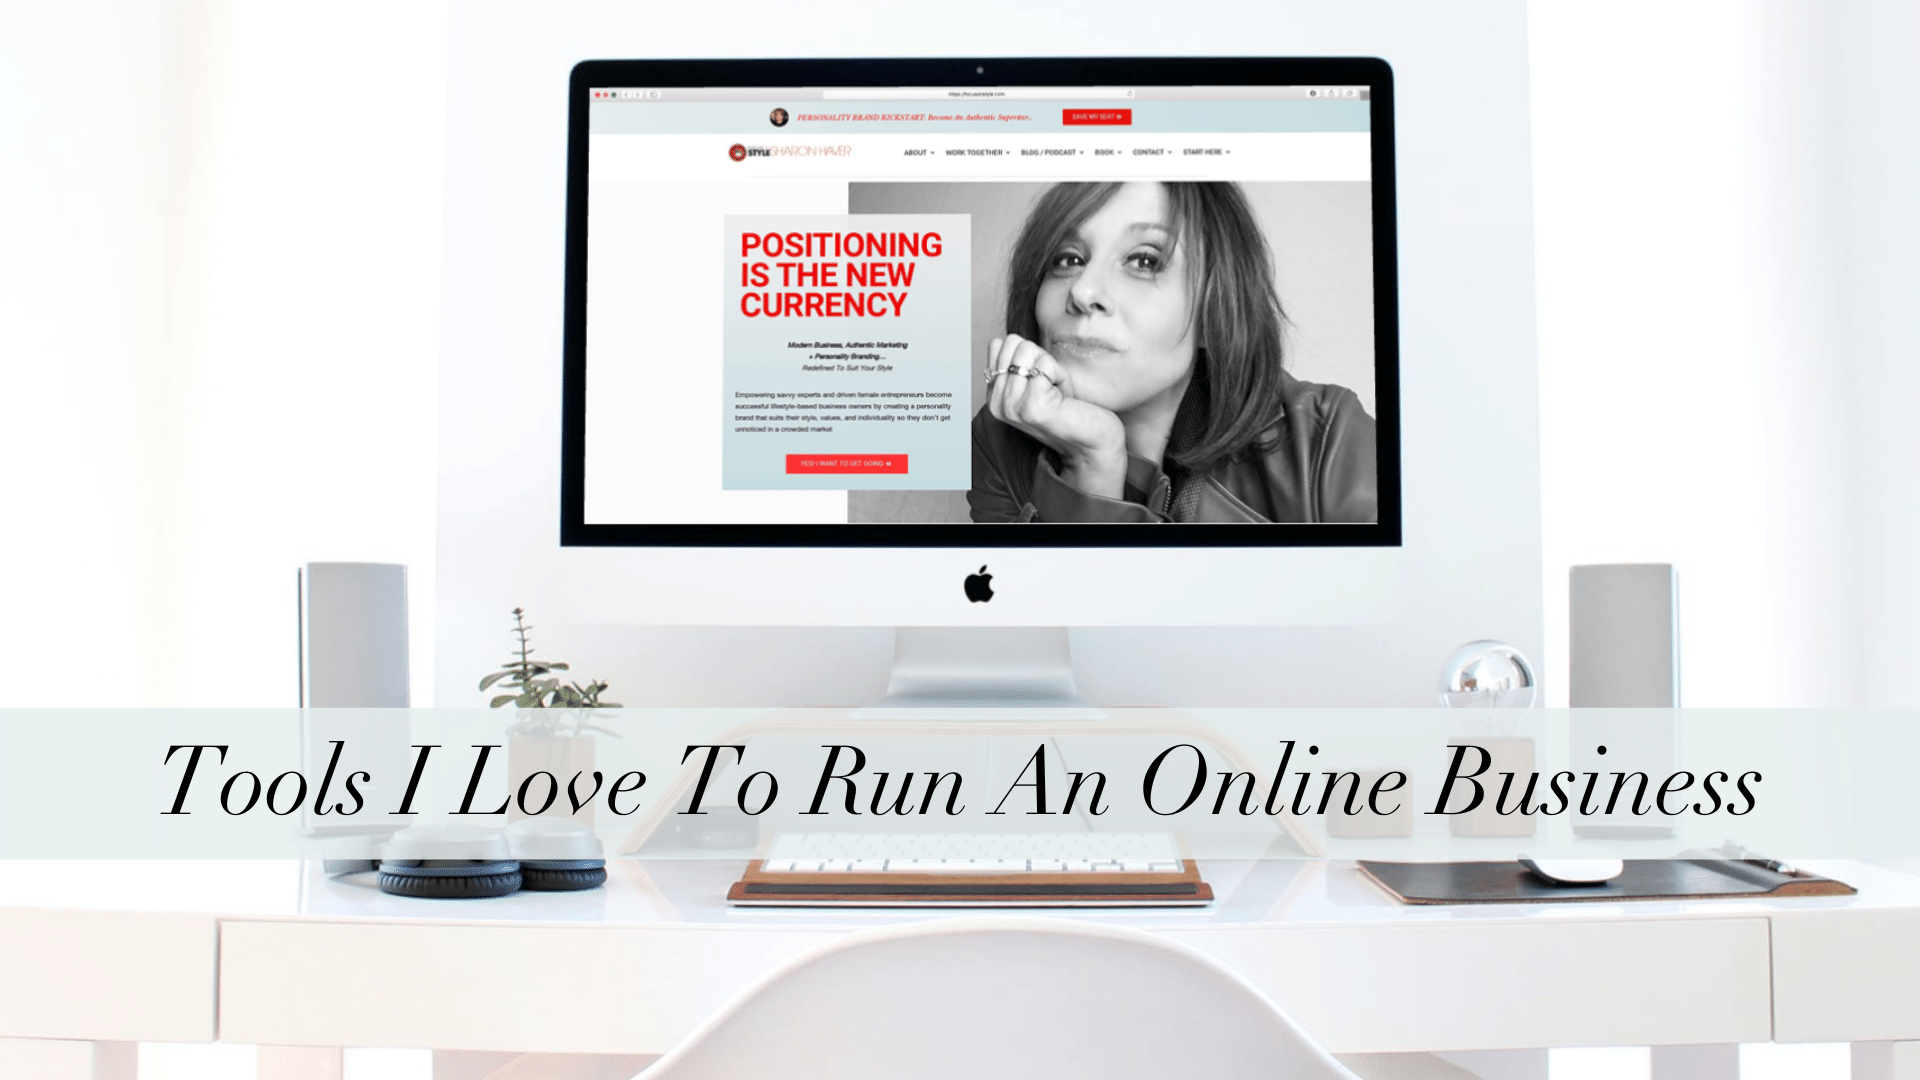 The best business tools to run a successful online business